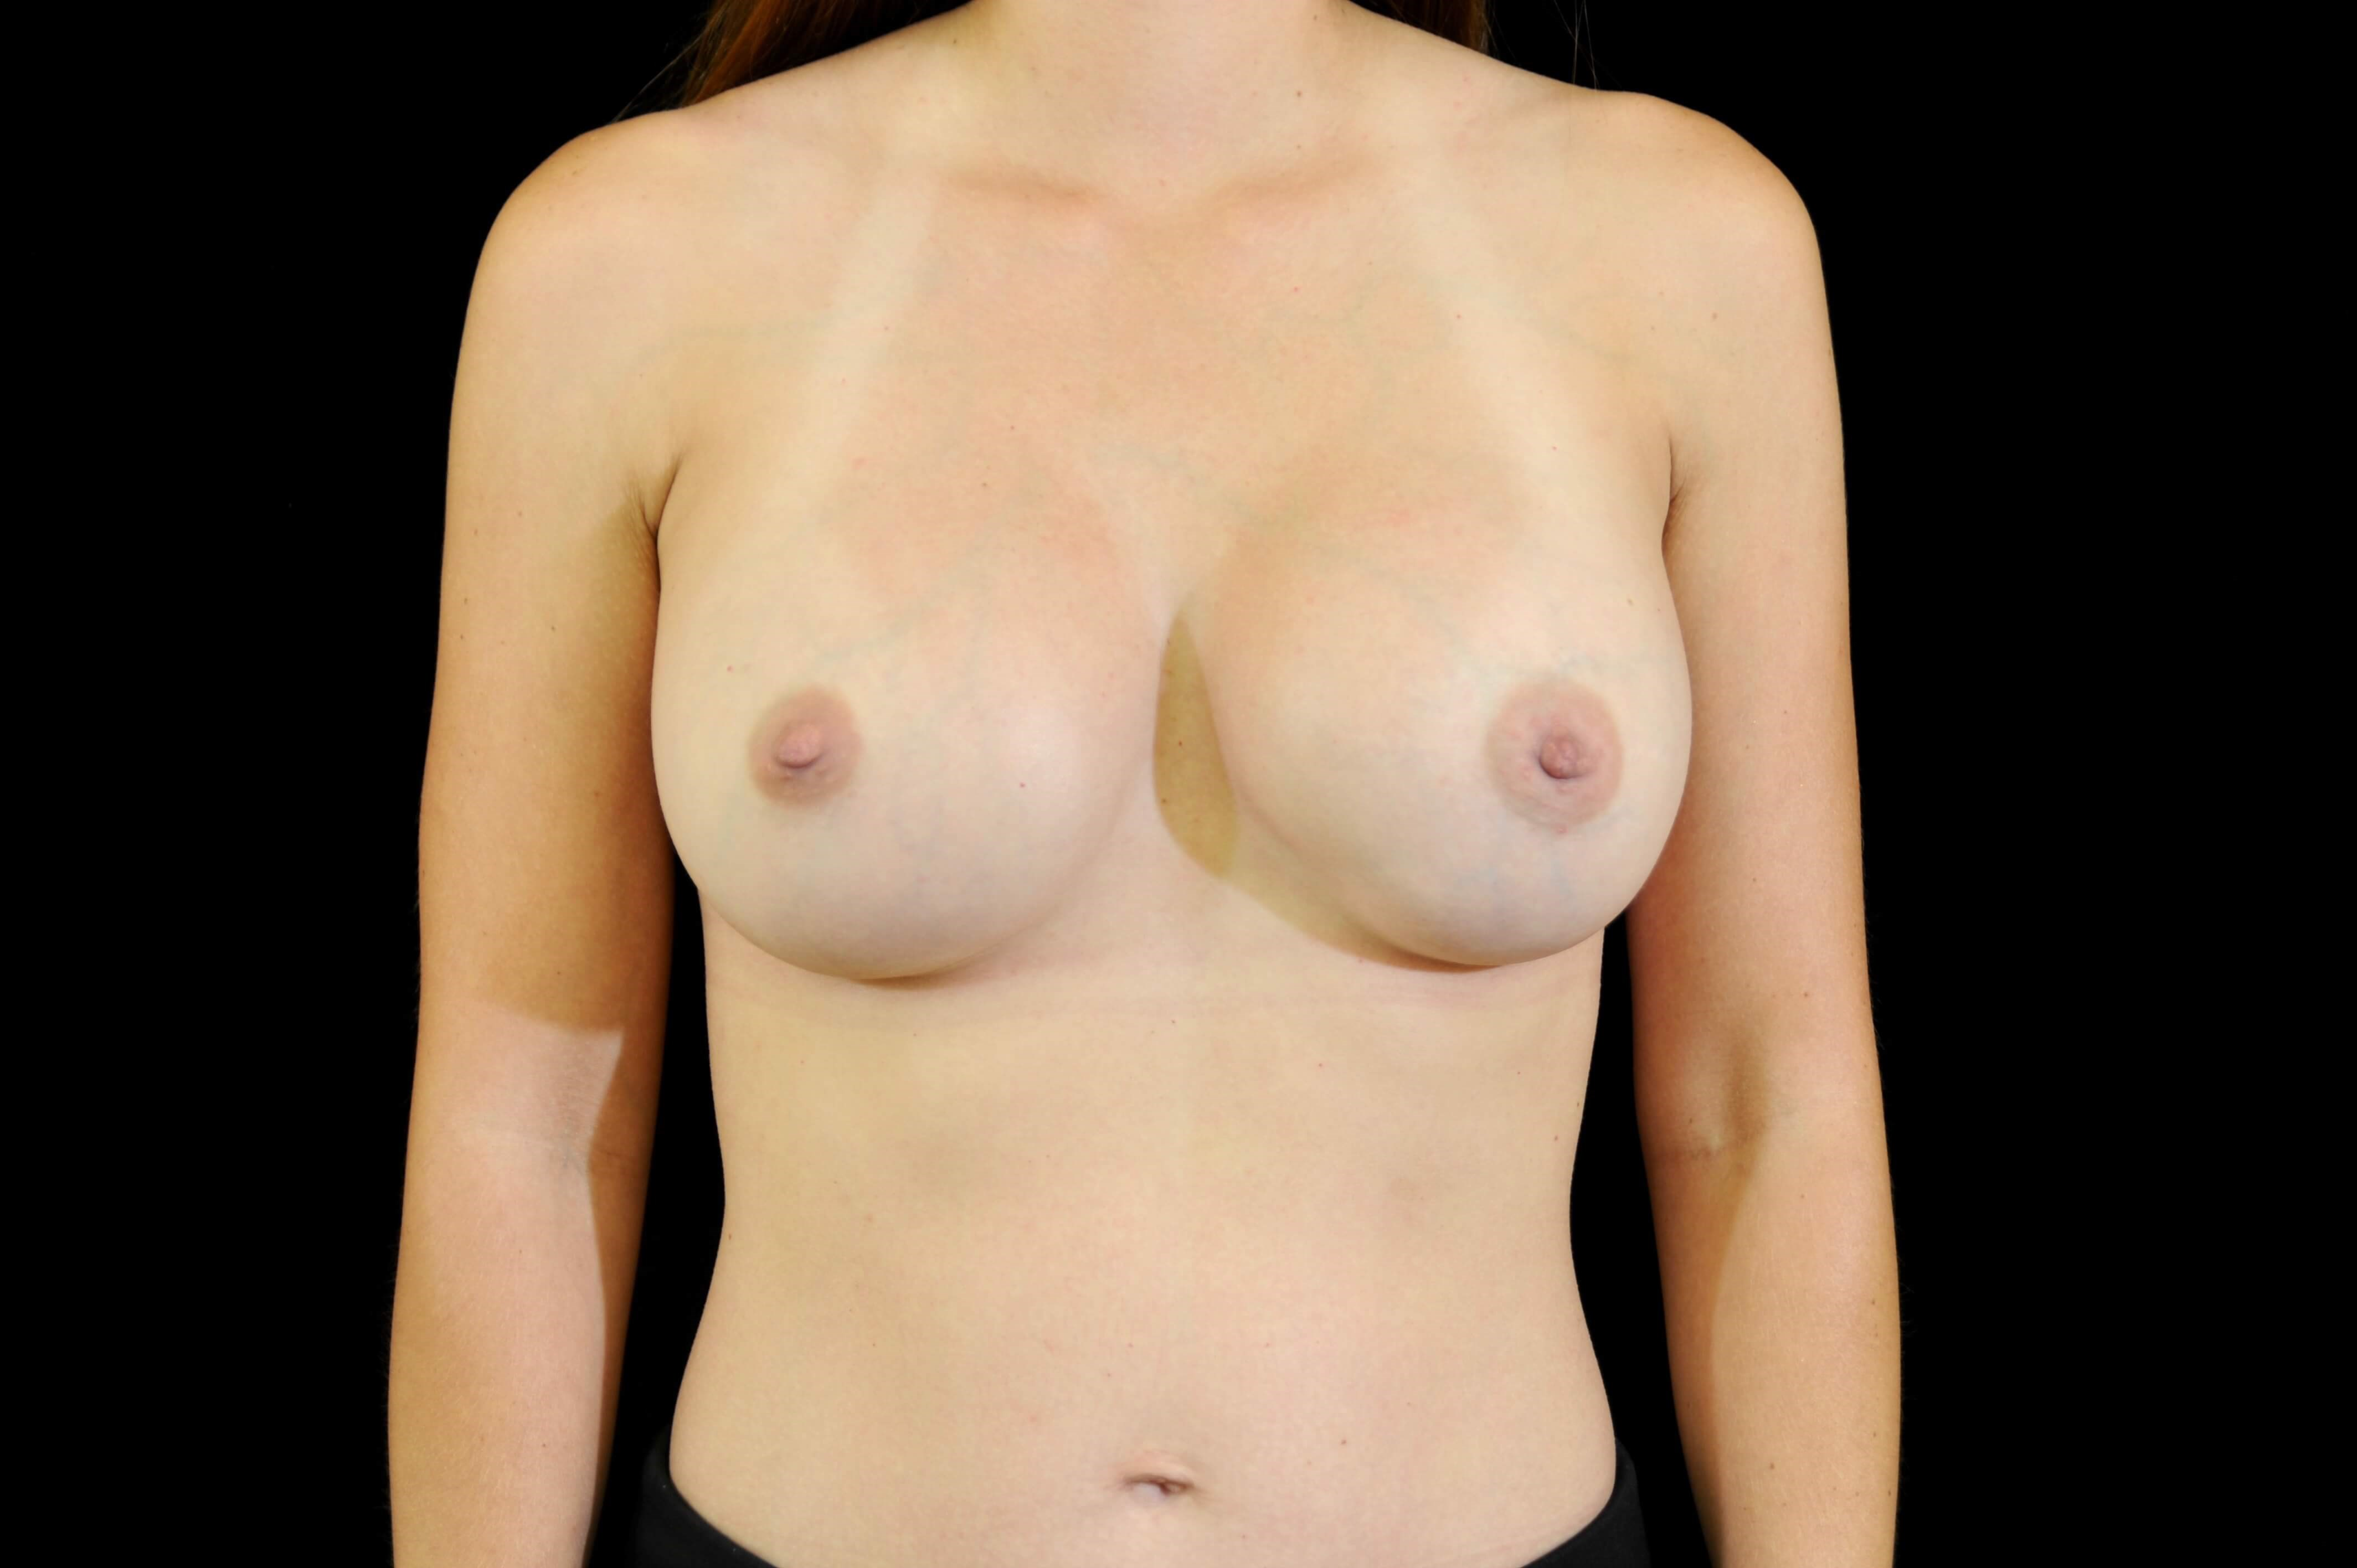 Breast Implant Revision After Implant Replacement